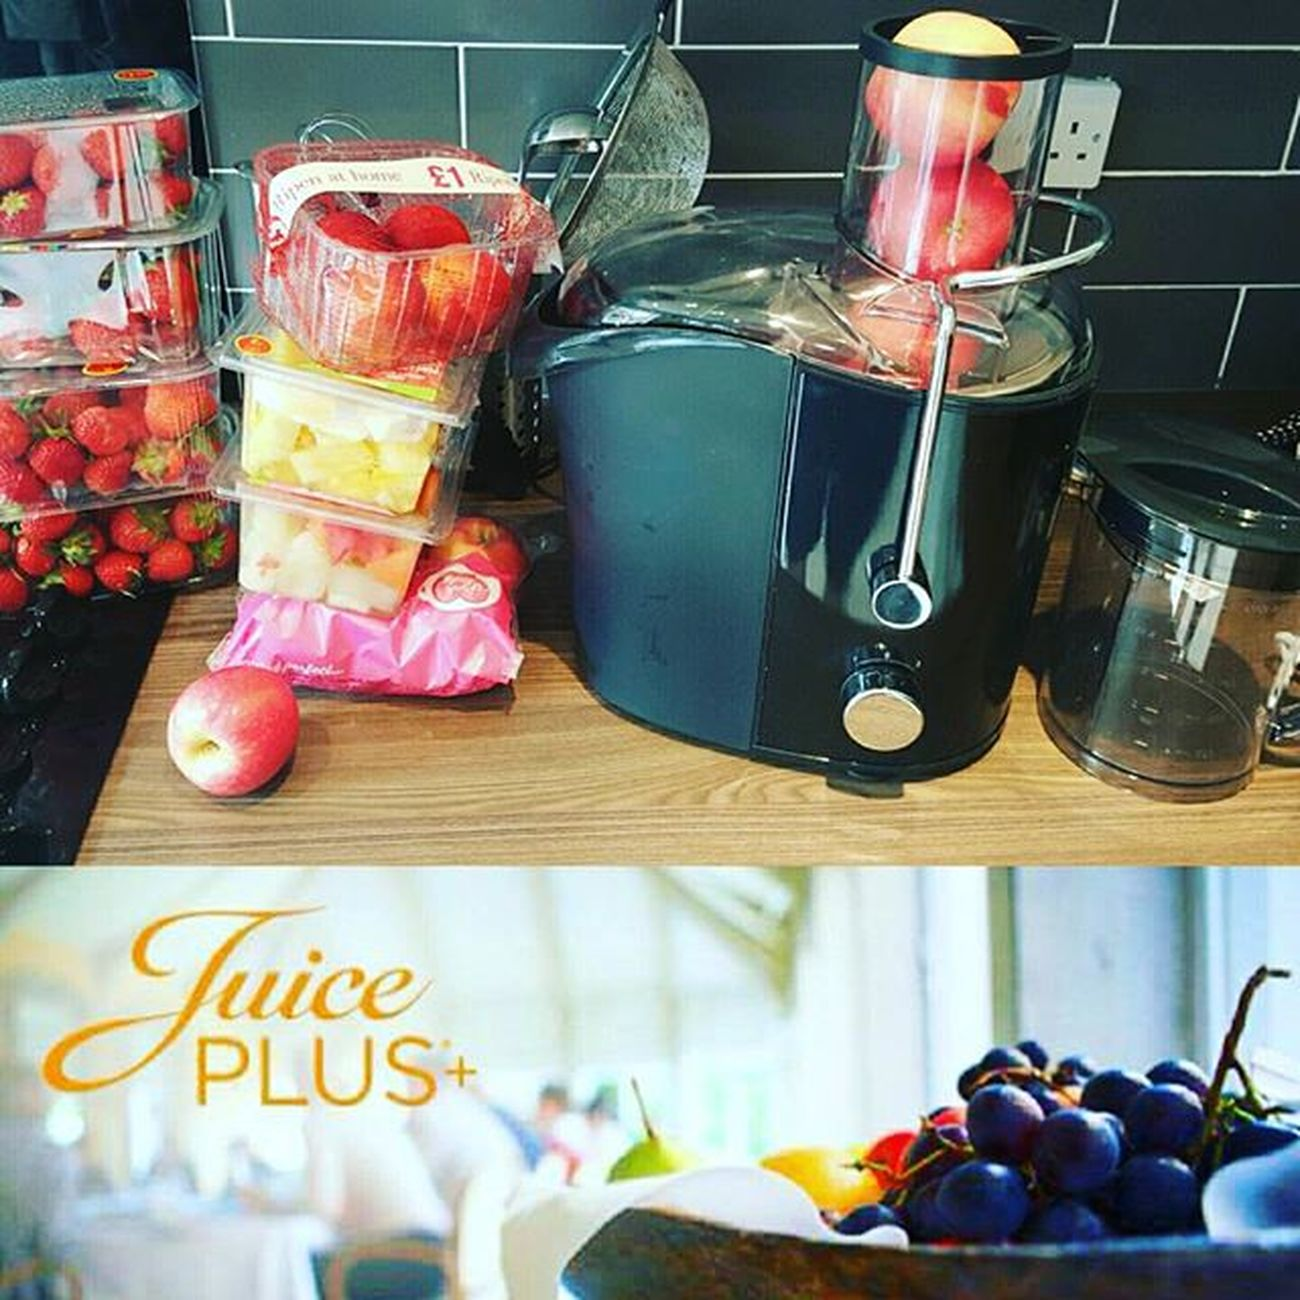 I love my juicer... Sunshine Scotland Strawberry Pinkladyapple Melonmedley Pinapple Healthychoices Healthy Juicer Onesimplechange Oscgrancanaria Juiceplus